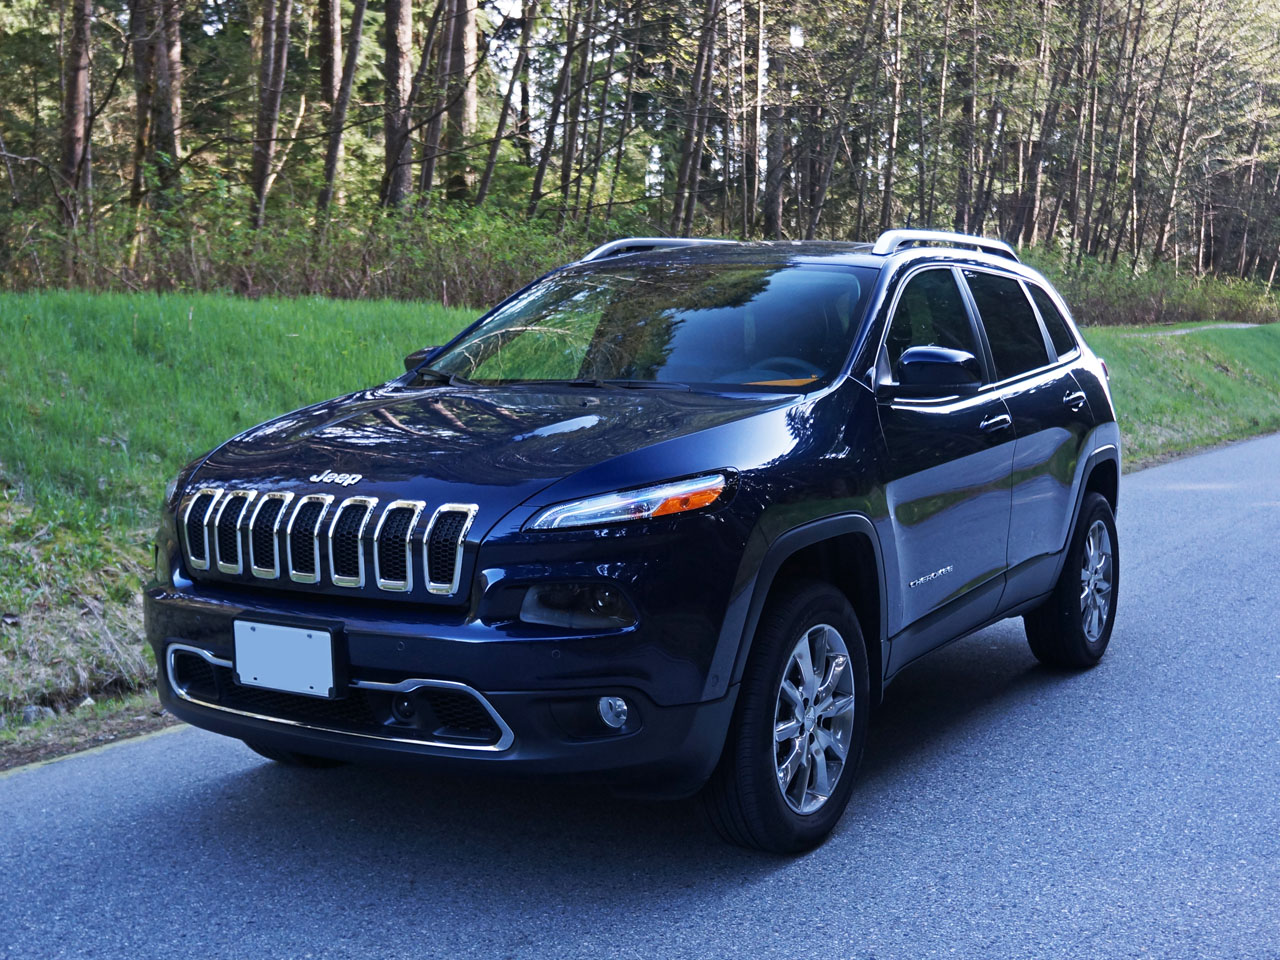 2014 jeep cherokee limited 4x4 road test review carcostcanada. Black Bedroom Furniture Sets. Home Design Ideas